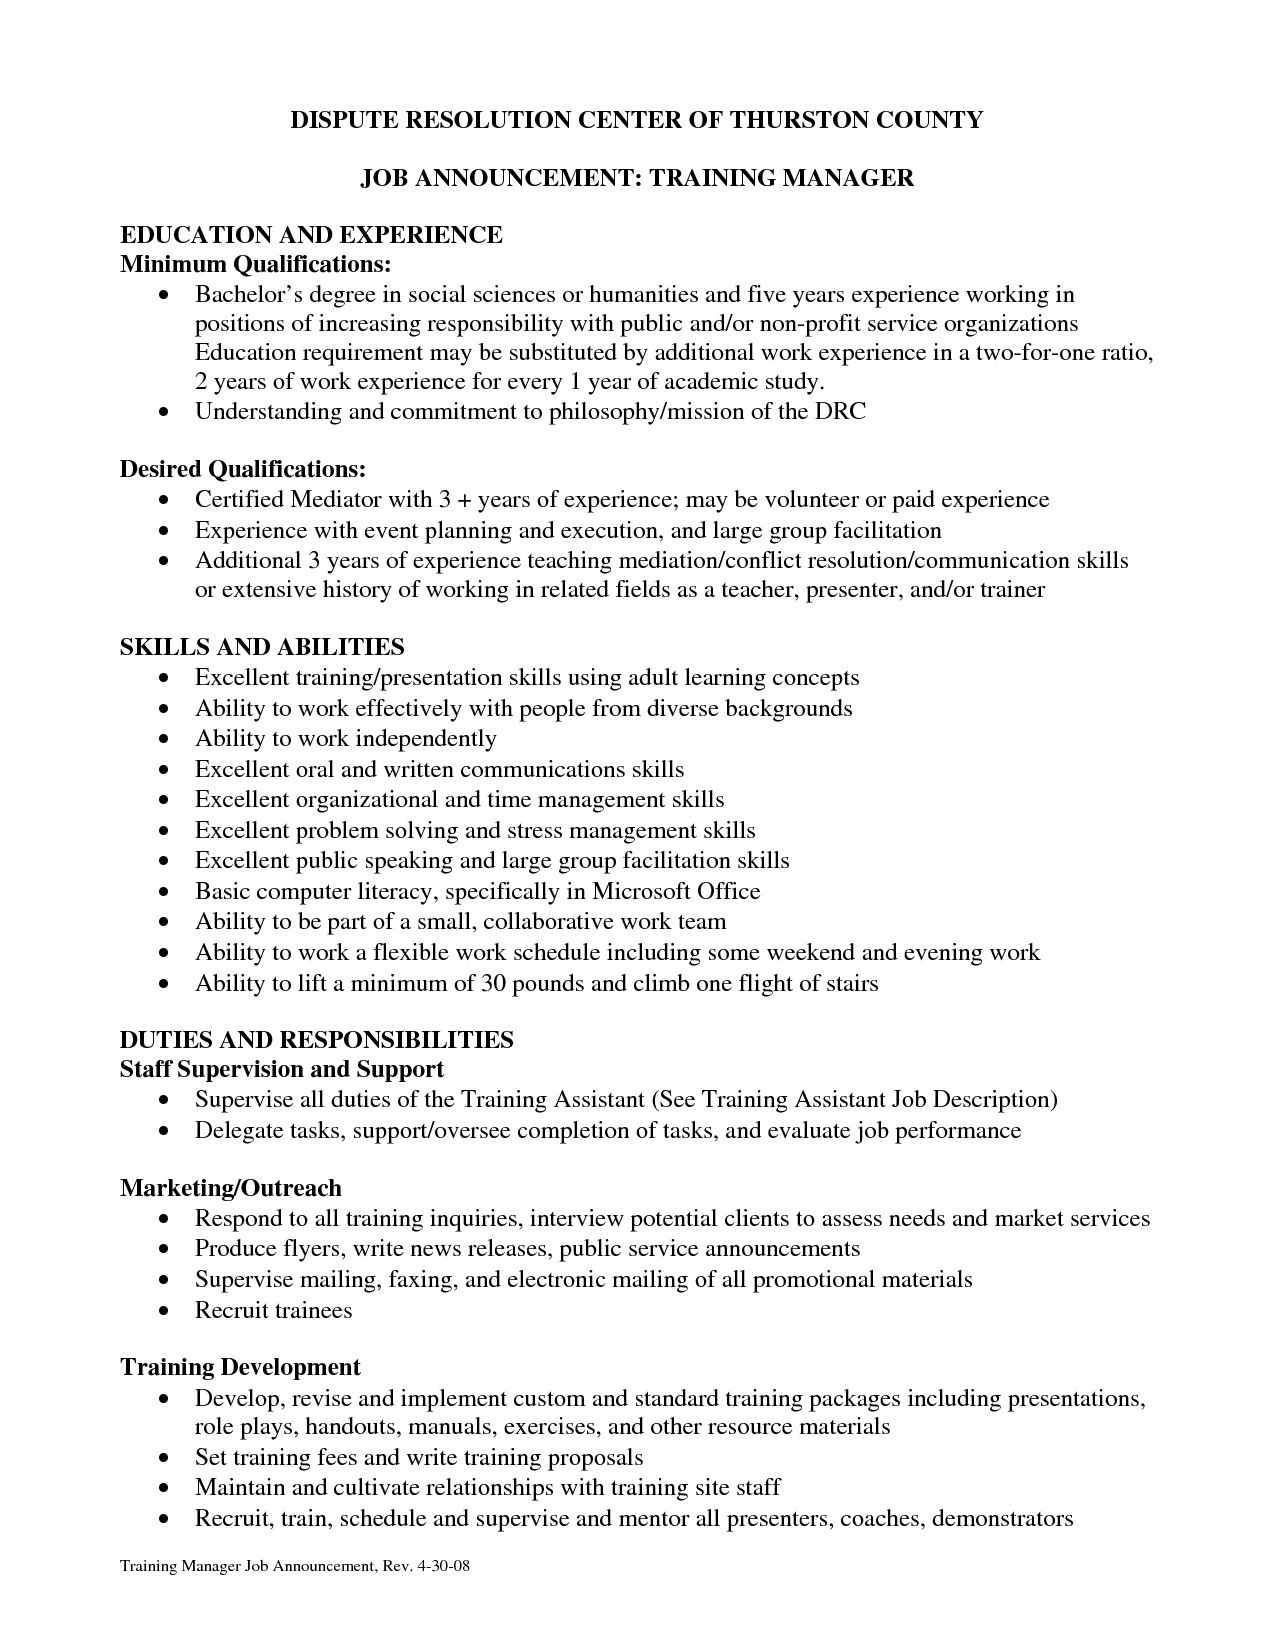 Training Coordinator Resume Cover Letter  Training Coordinator